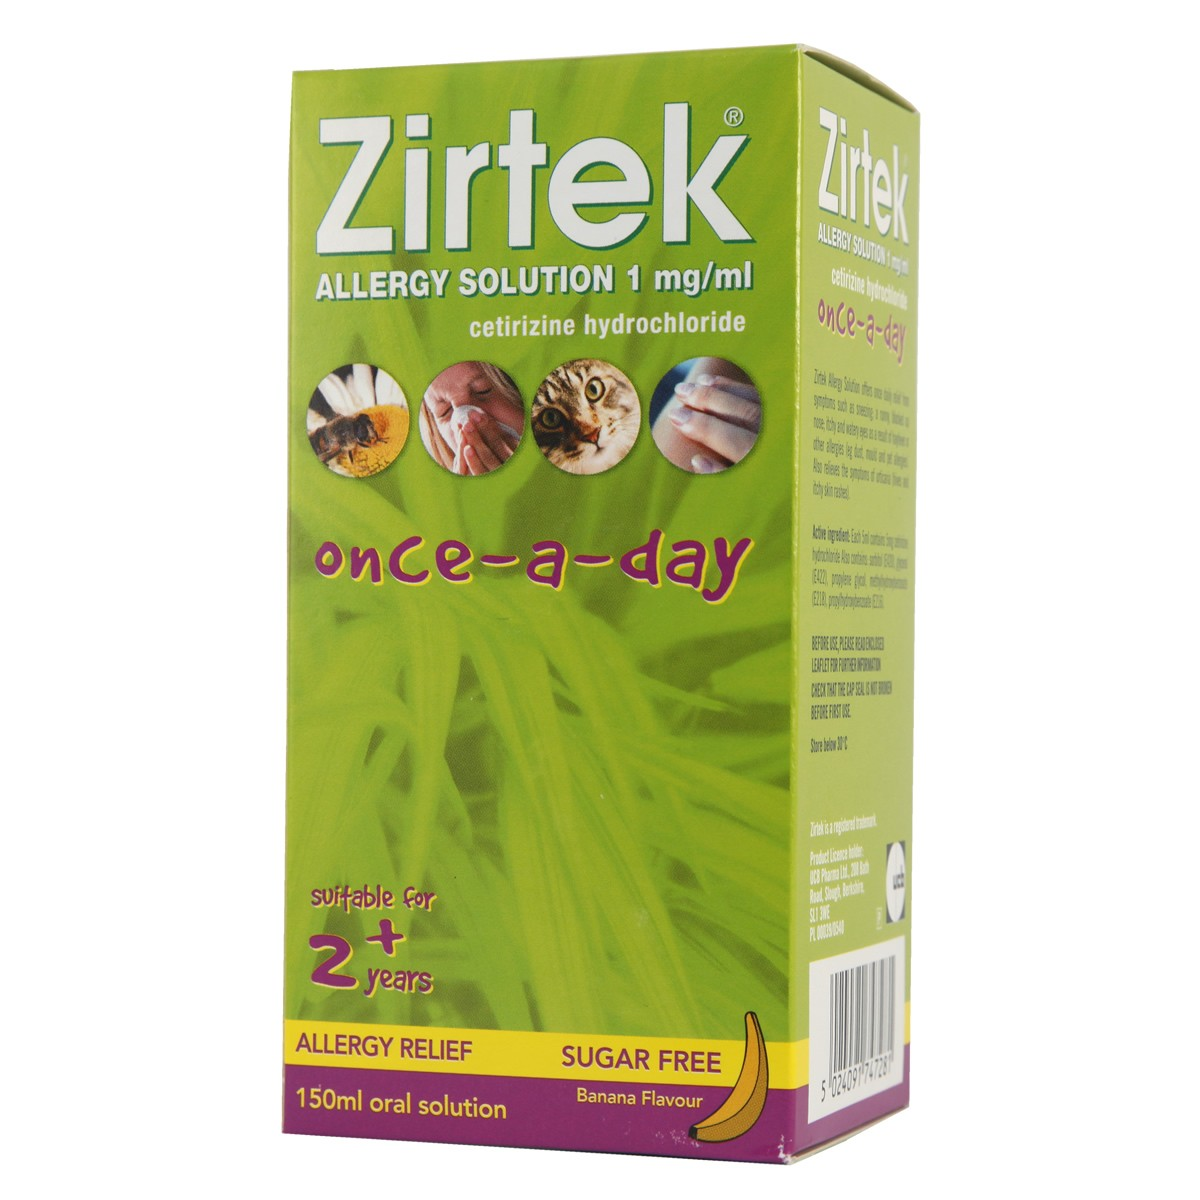 Zirtek Allergy Solution Once-a-Day